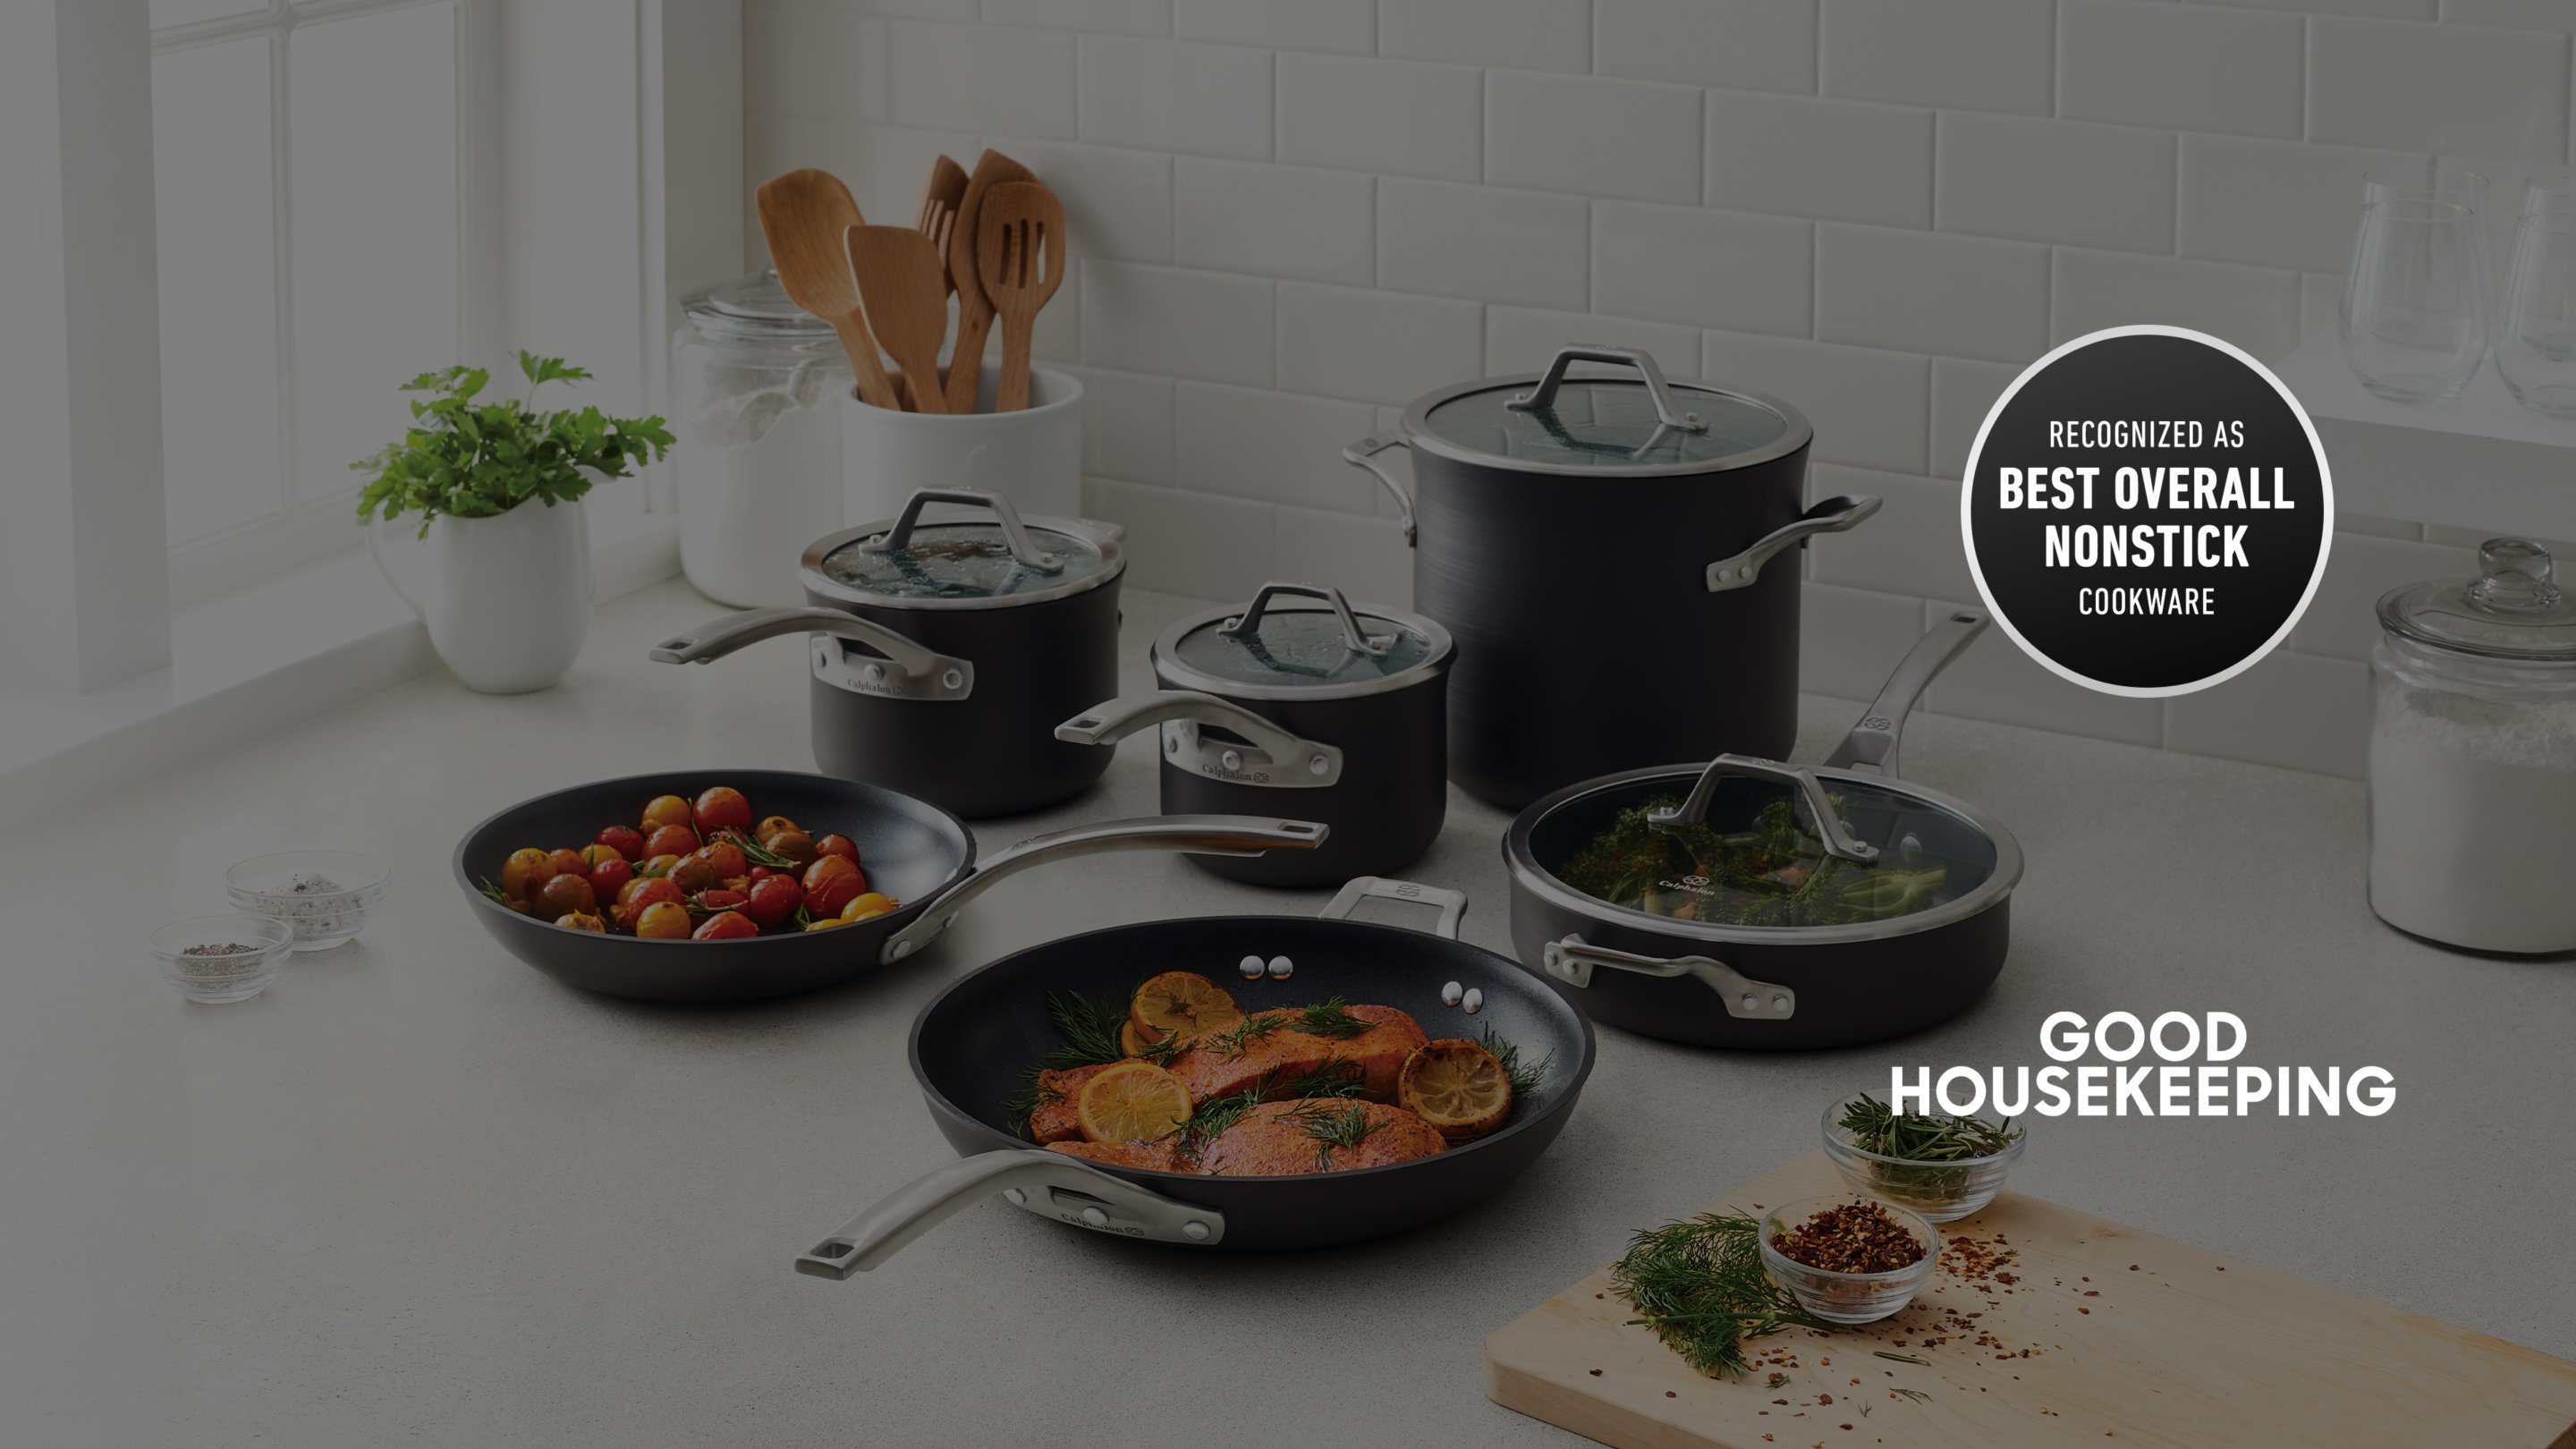 good housekeeping, recognized as best overall nonstick cookware